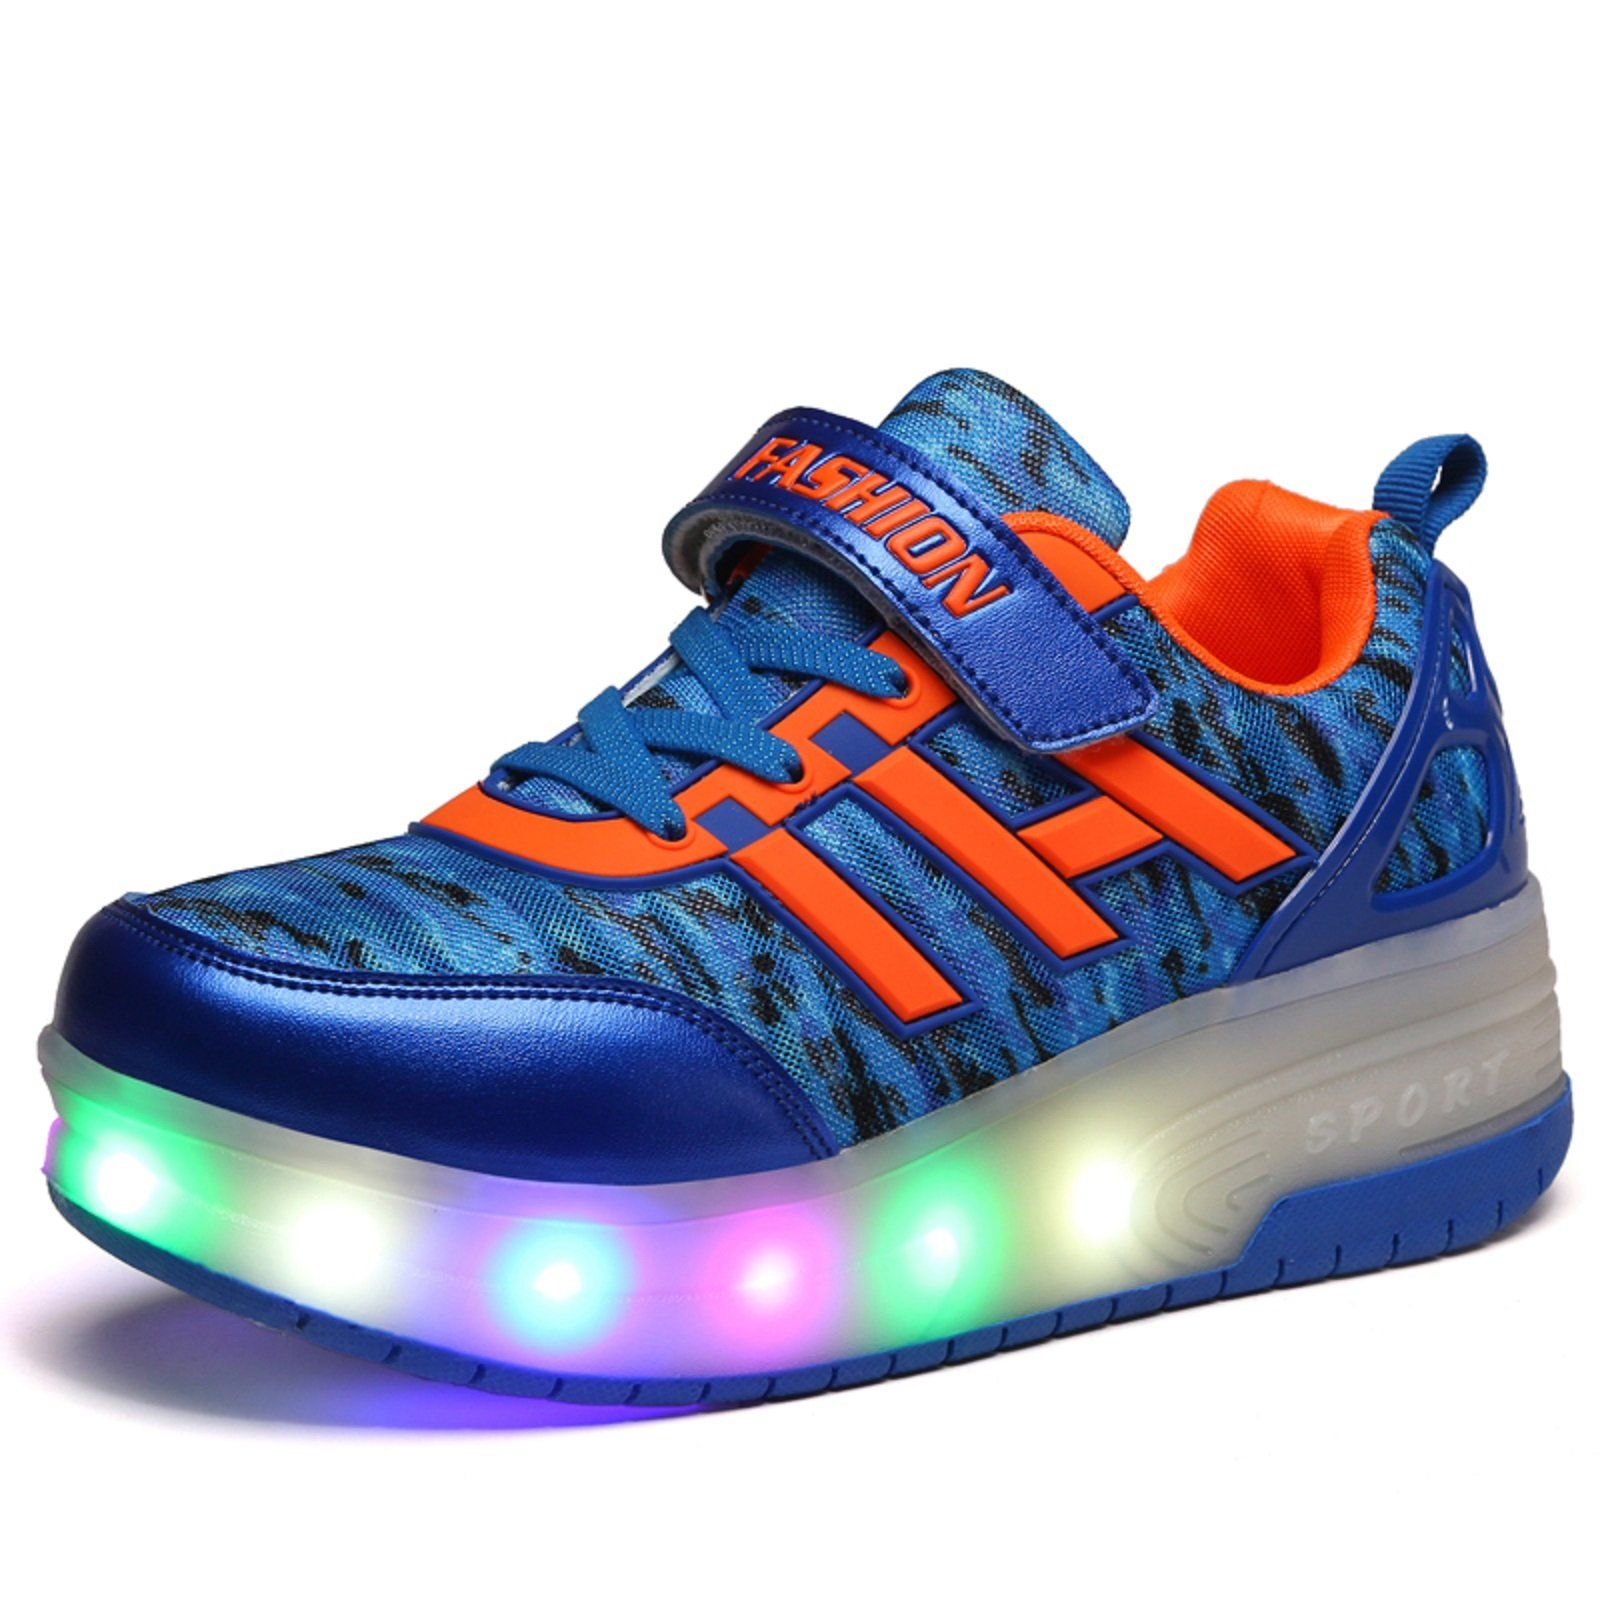 Pop out roller skate shoes -